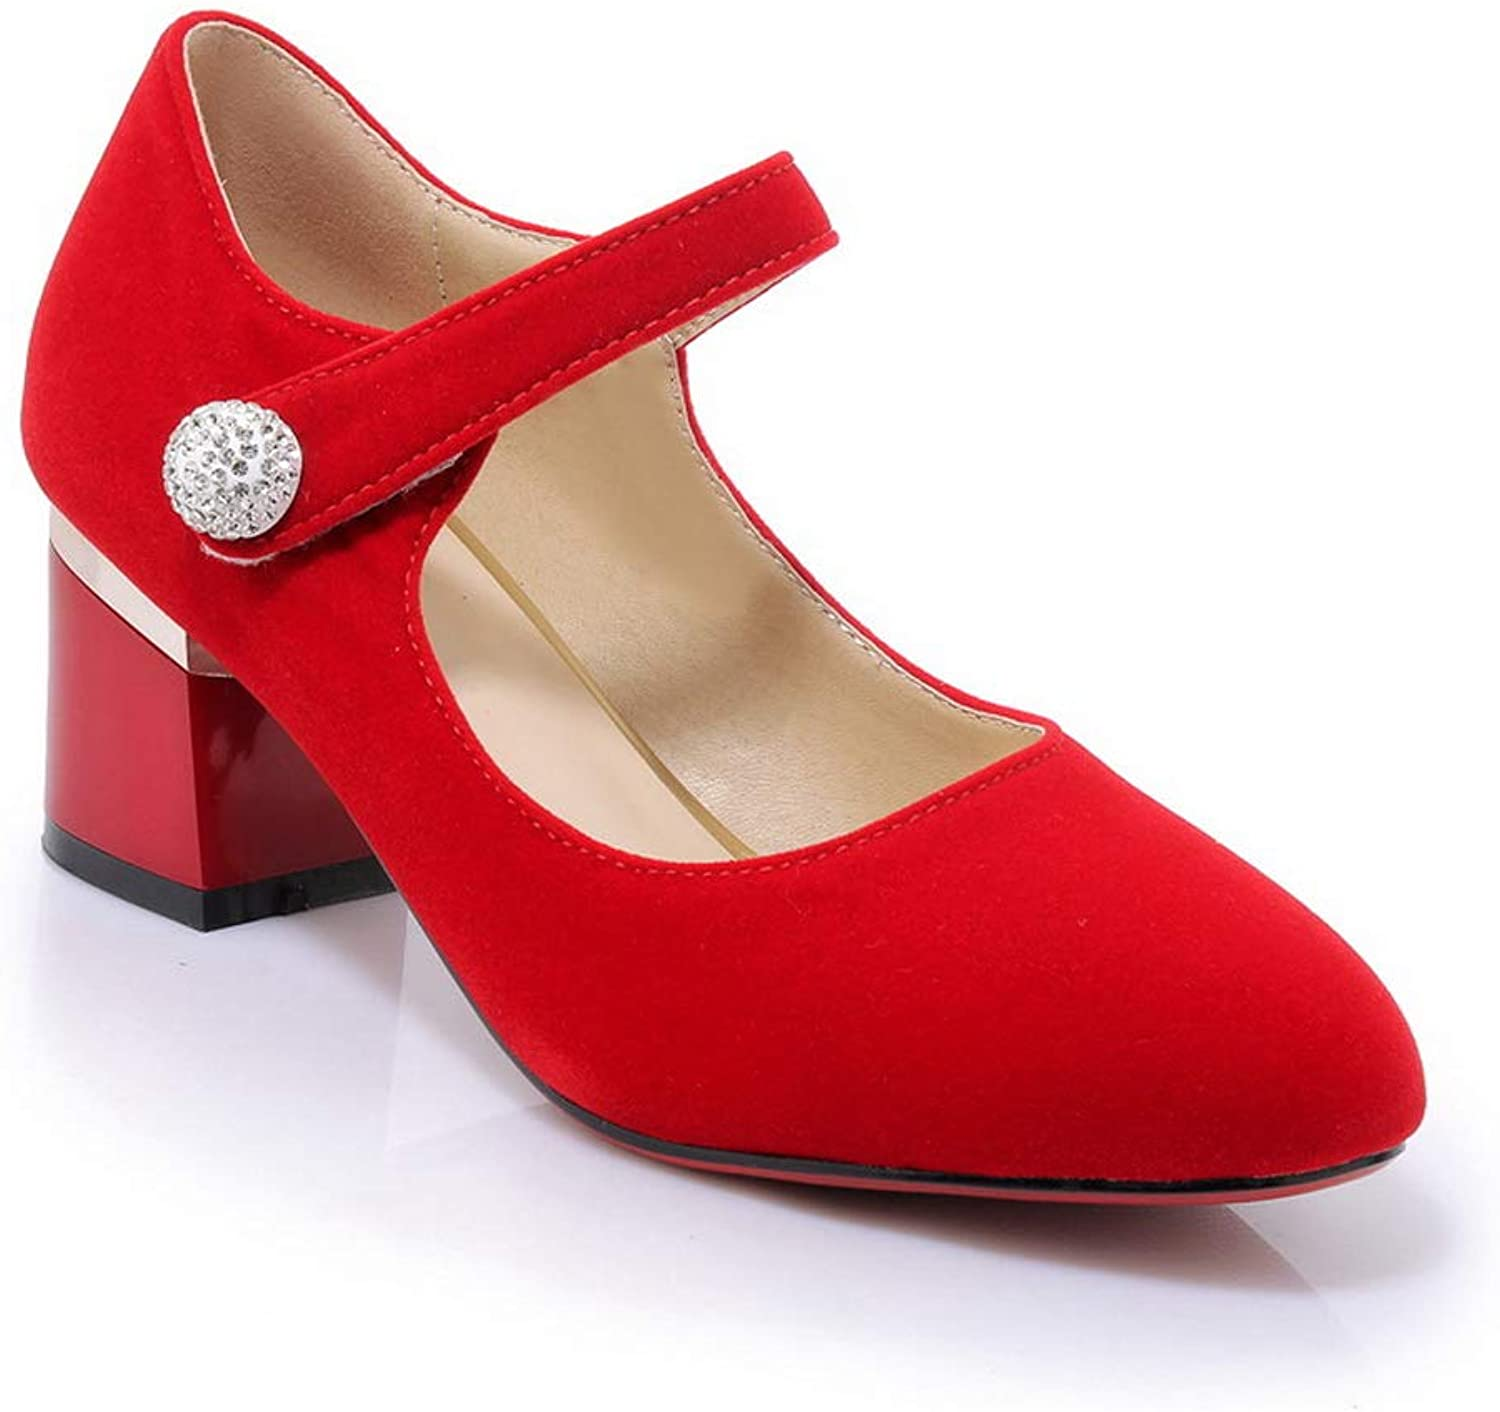 AN Womens Hollow Out Square Heels Pointed-Toe Imitated Suede Pumps shoes DGU00603